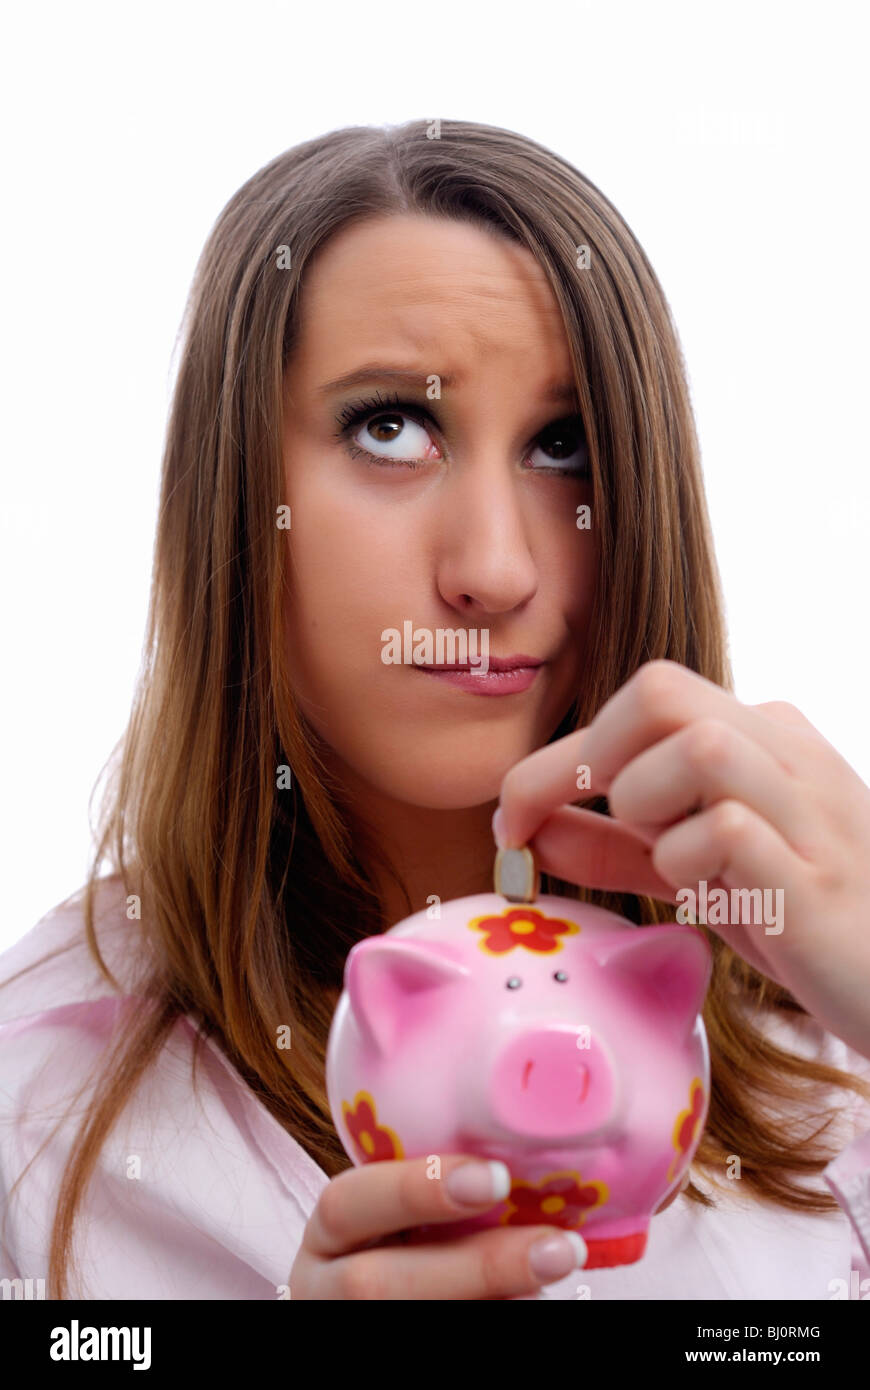 Woman with piggy bank in hand - Stock Image